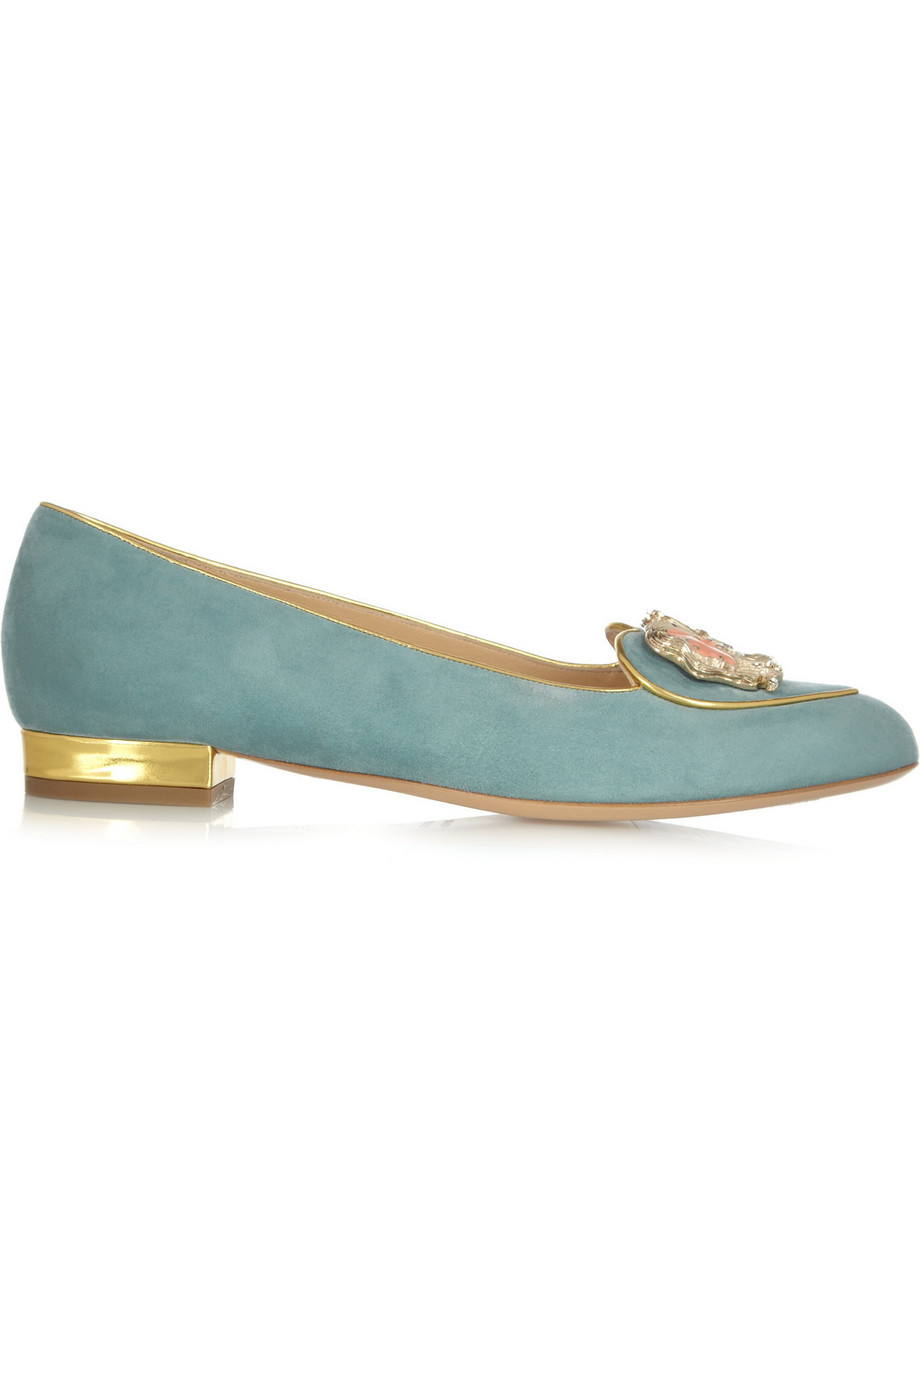 Charlotte Olympia Gemini Suede Slippers, Light Blue, Women's US Size: 3.5, Size: 34